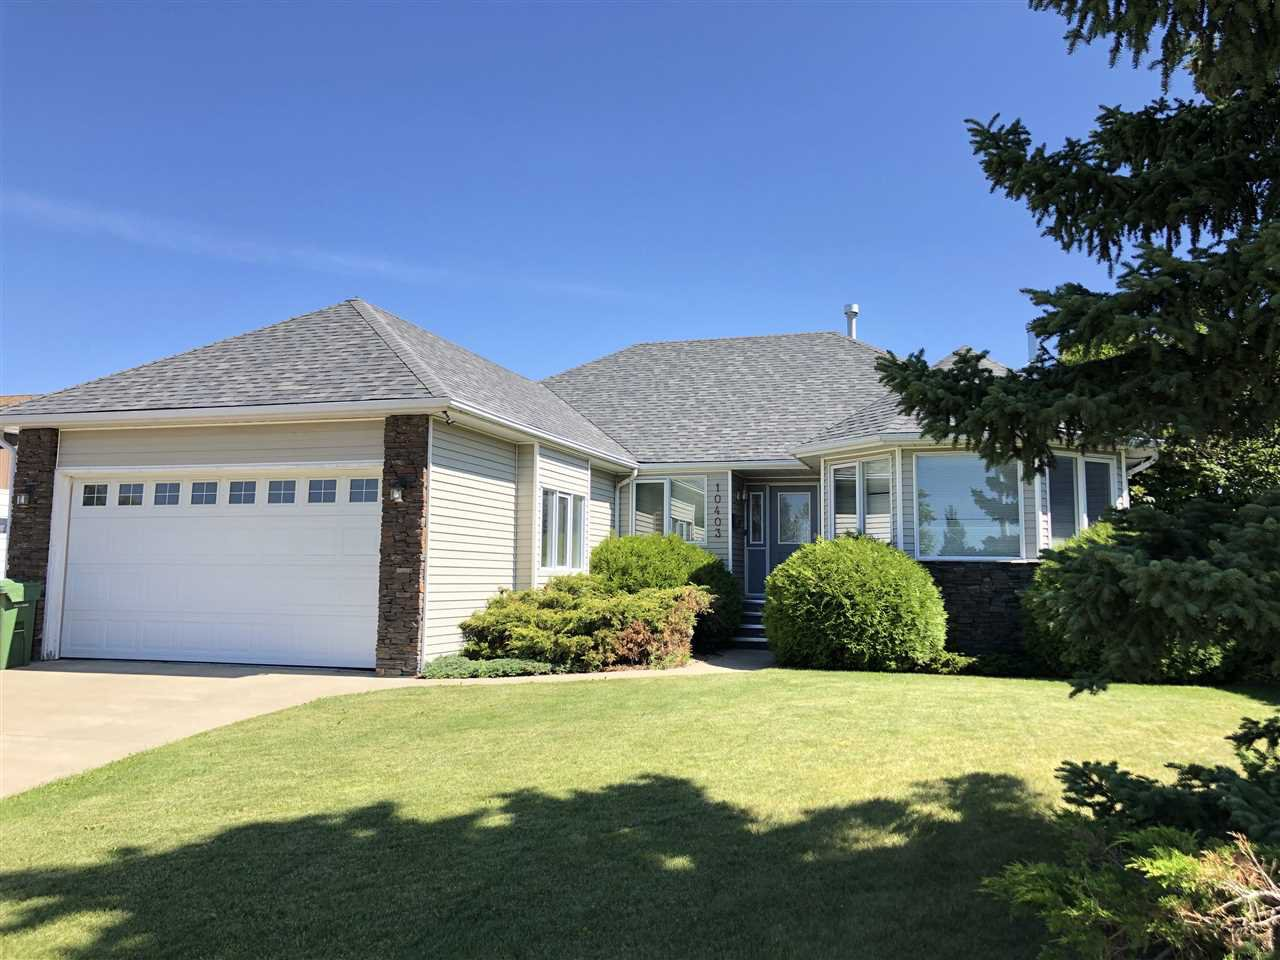 Main Photo: 10403 111 Avenue: Westlock House for sale : MLS®# E4186992